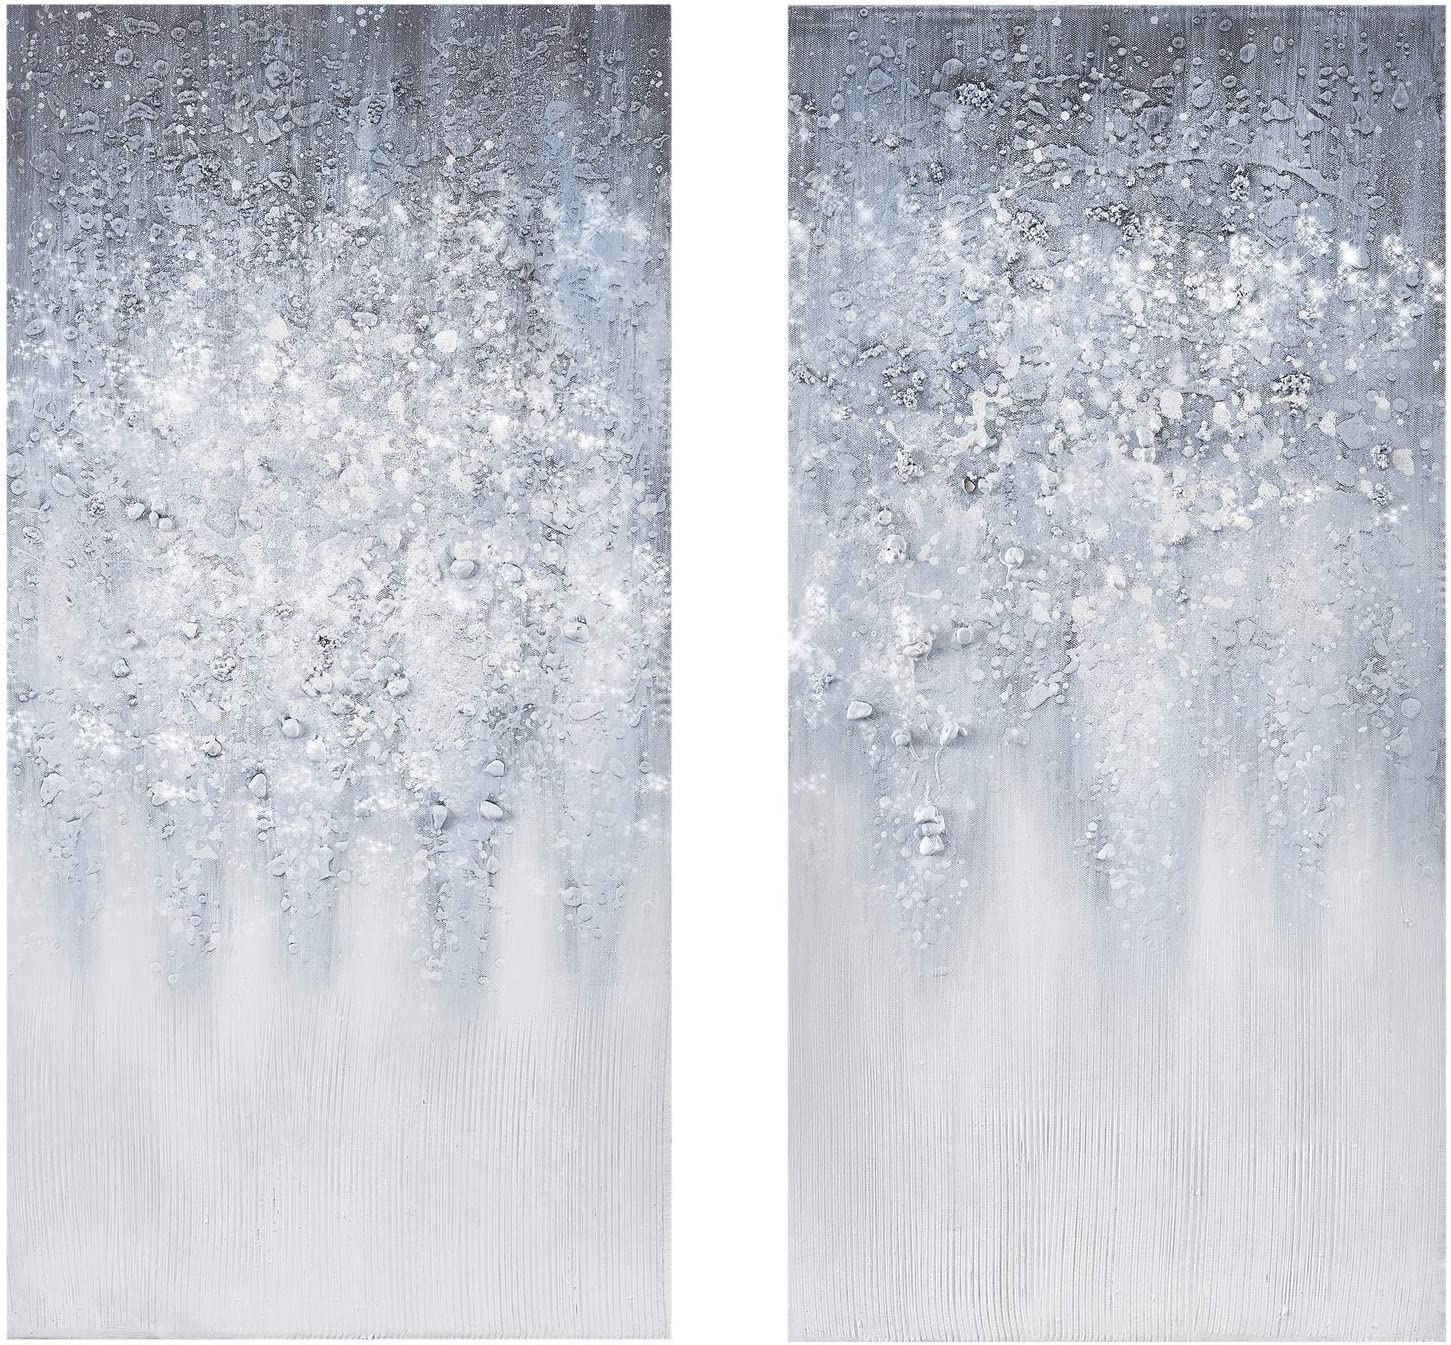 Madison Park Wall Art Living Room Décor - Abstract Glitter Embelished Canvas Home Accent Modern Dining Bathroom Decoration, Ready to Hang Painting for Bedroom, 15